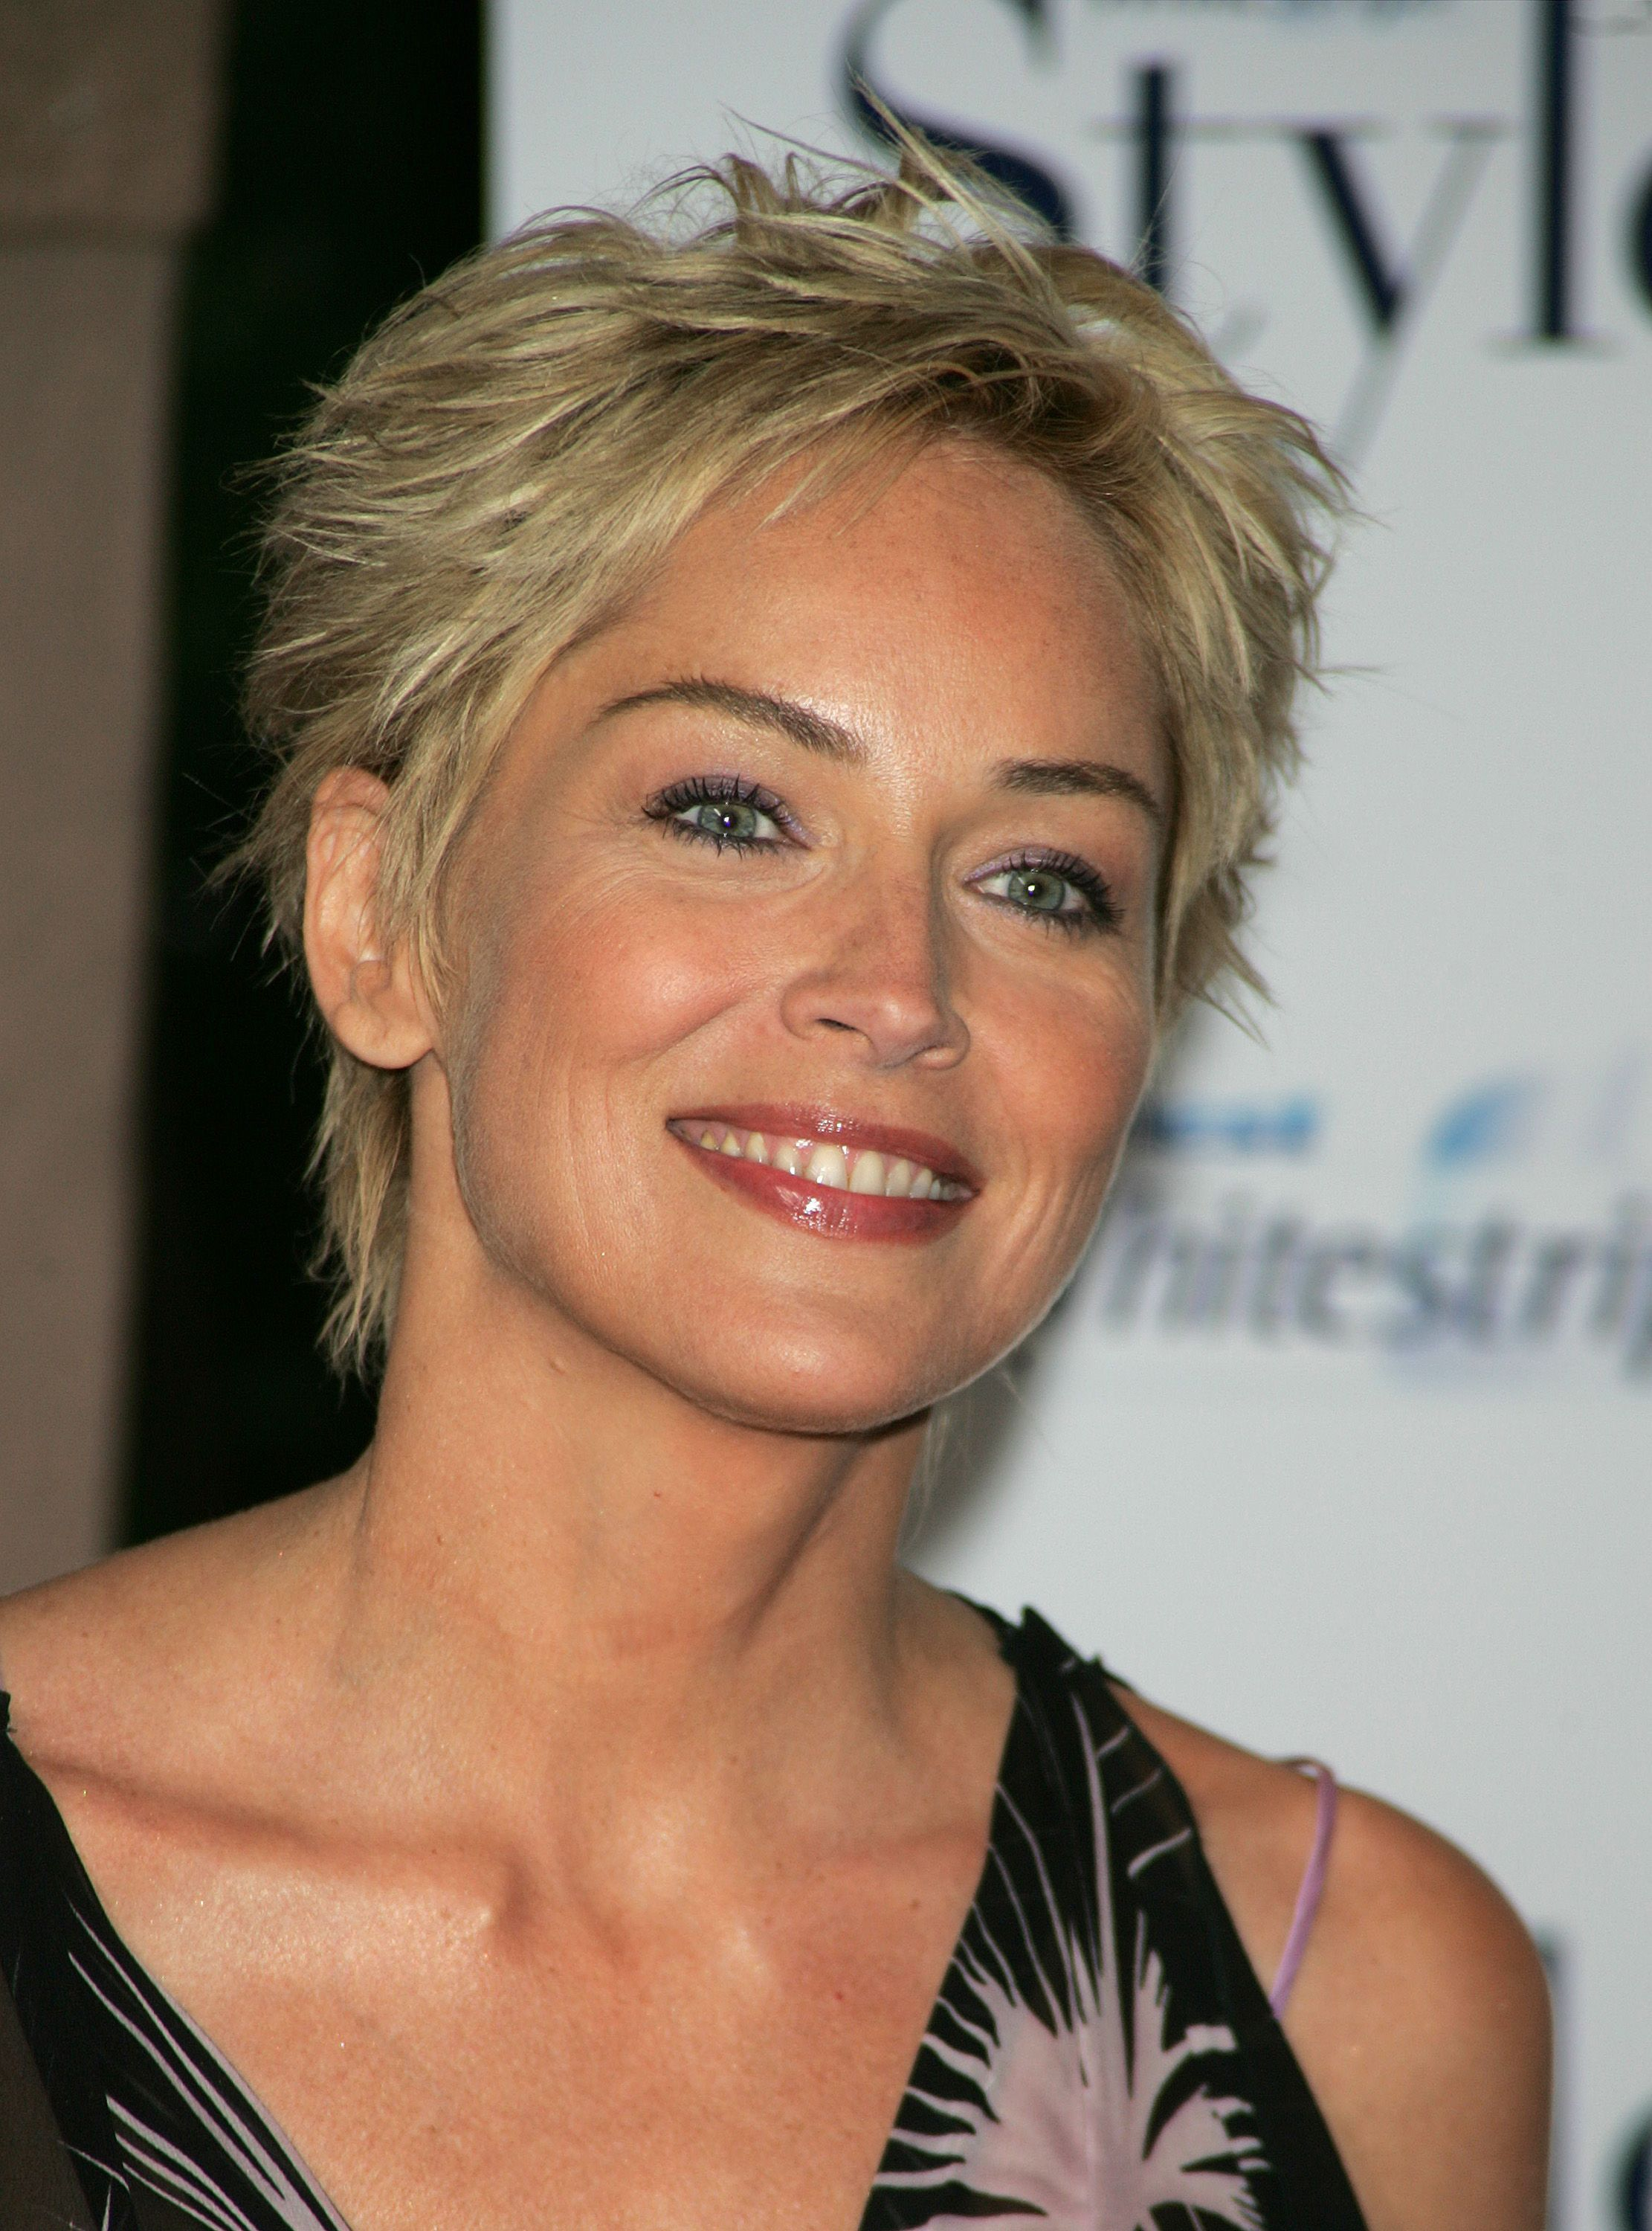 Sharon stone spiky short haircut for older women over 50 getty images - Short Pixie Cut For Women Over 50 Sharon Stone Hair Style Sharon Stone Haircuts